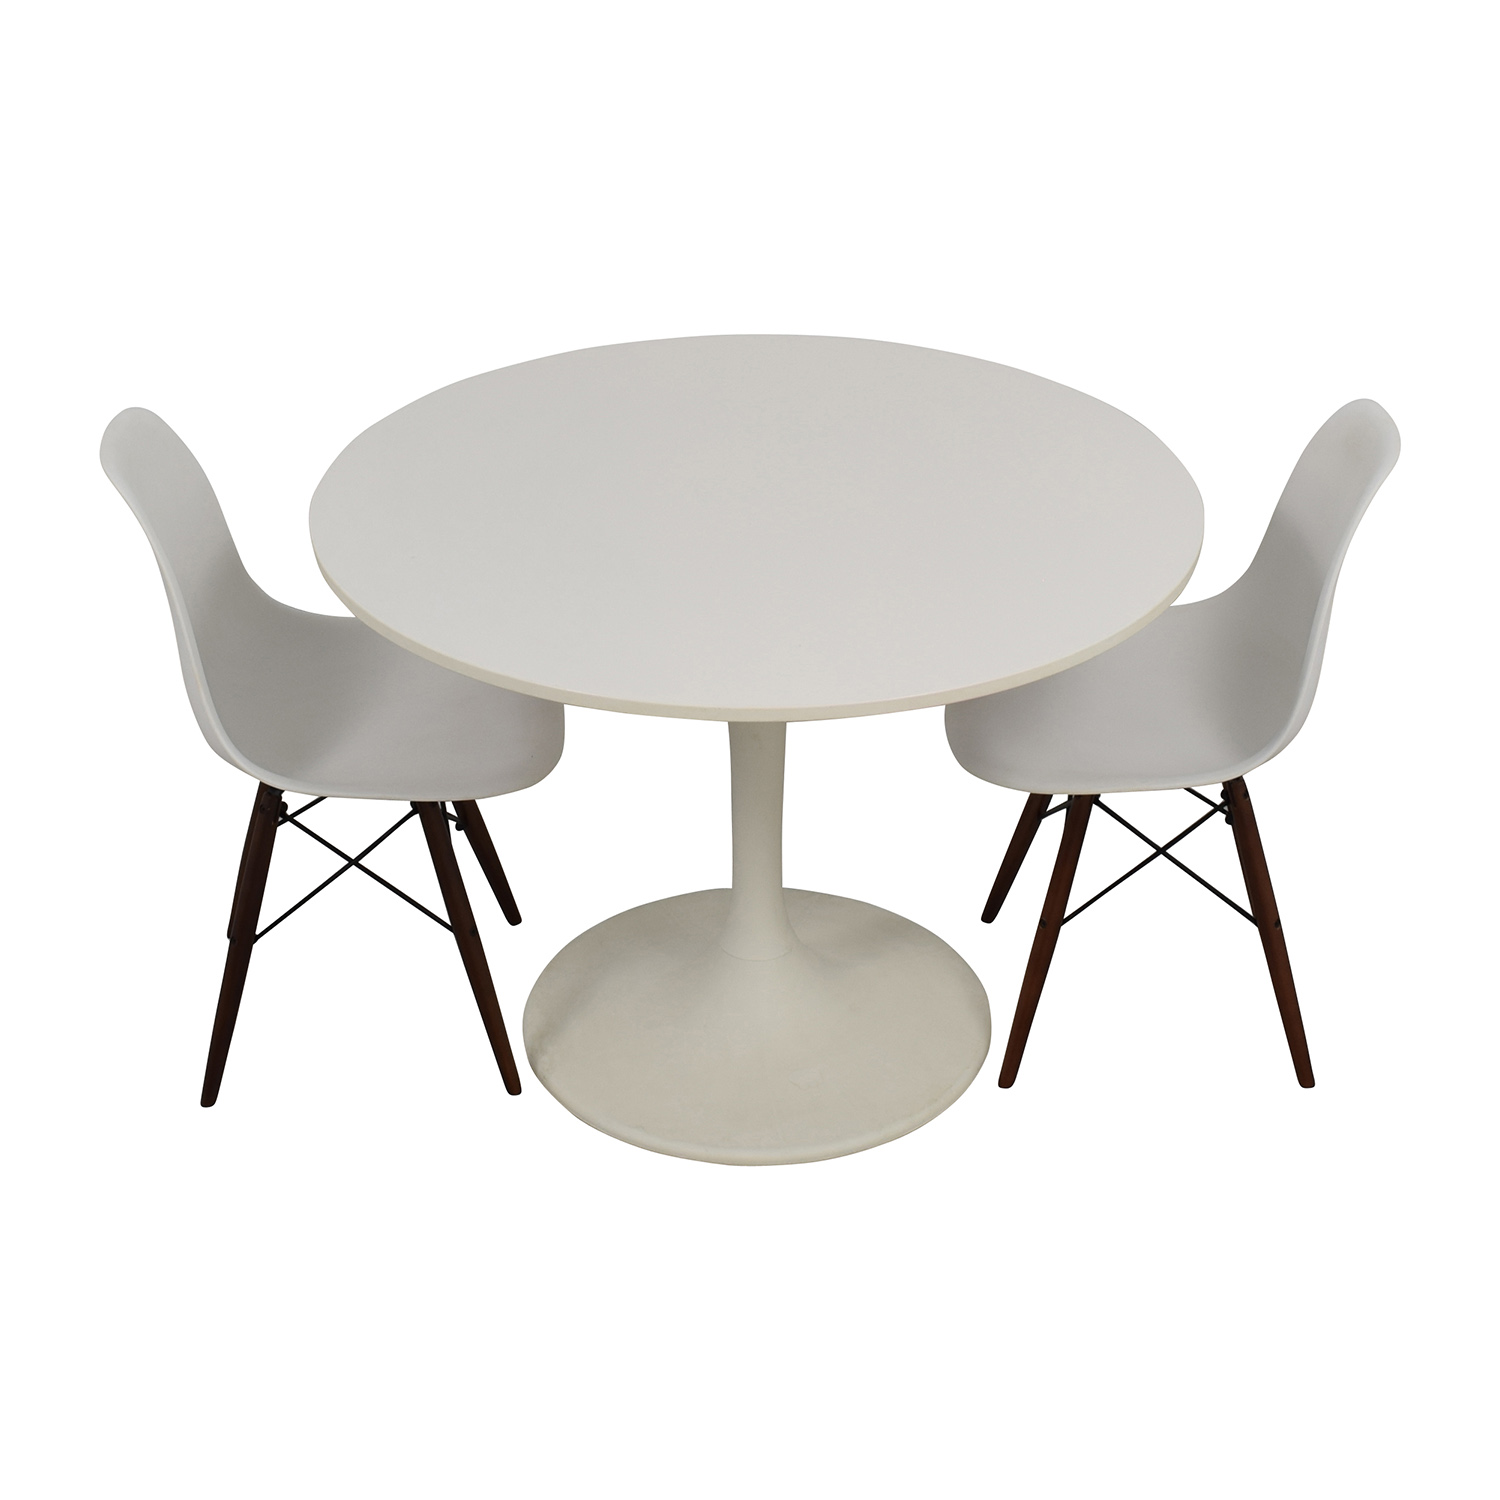 ... Vortex Tulip Table And Vortex Chair Set Dimensions ...